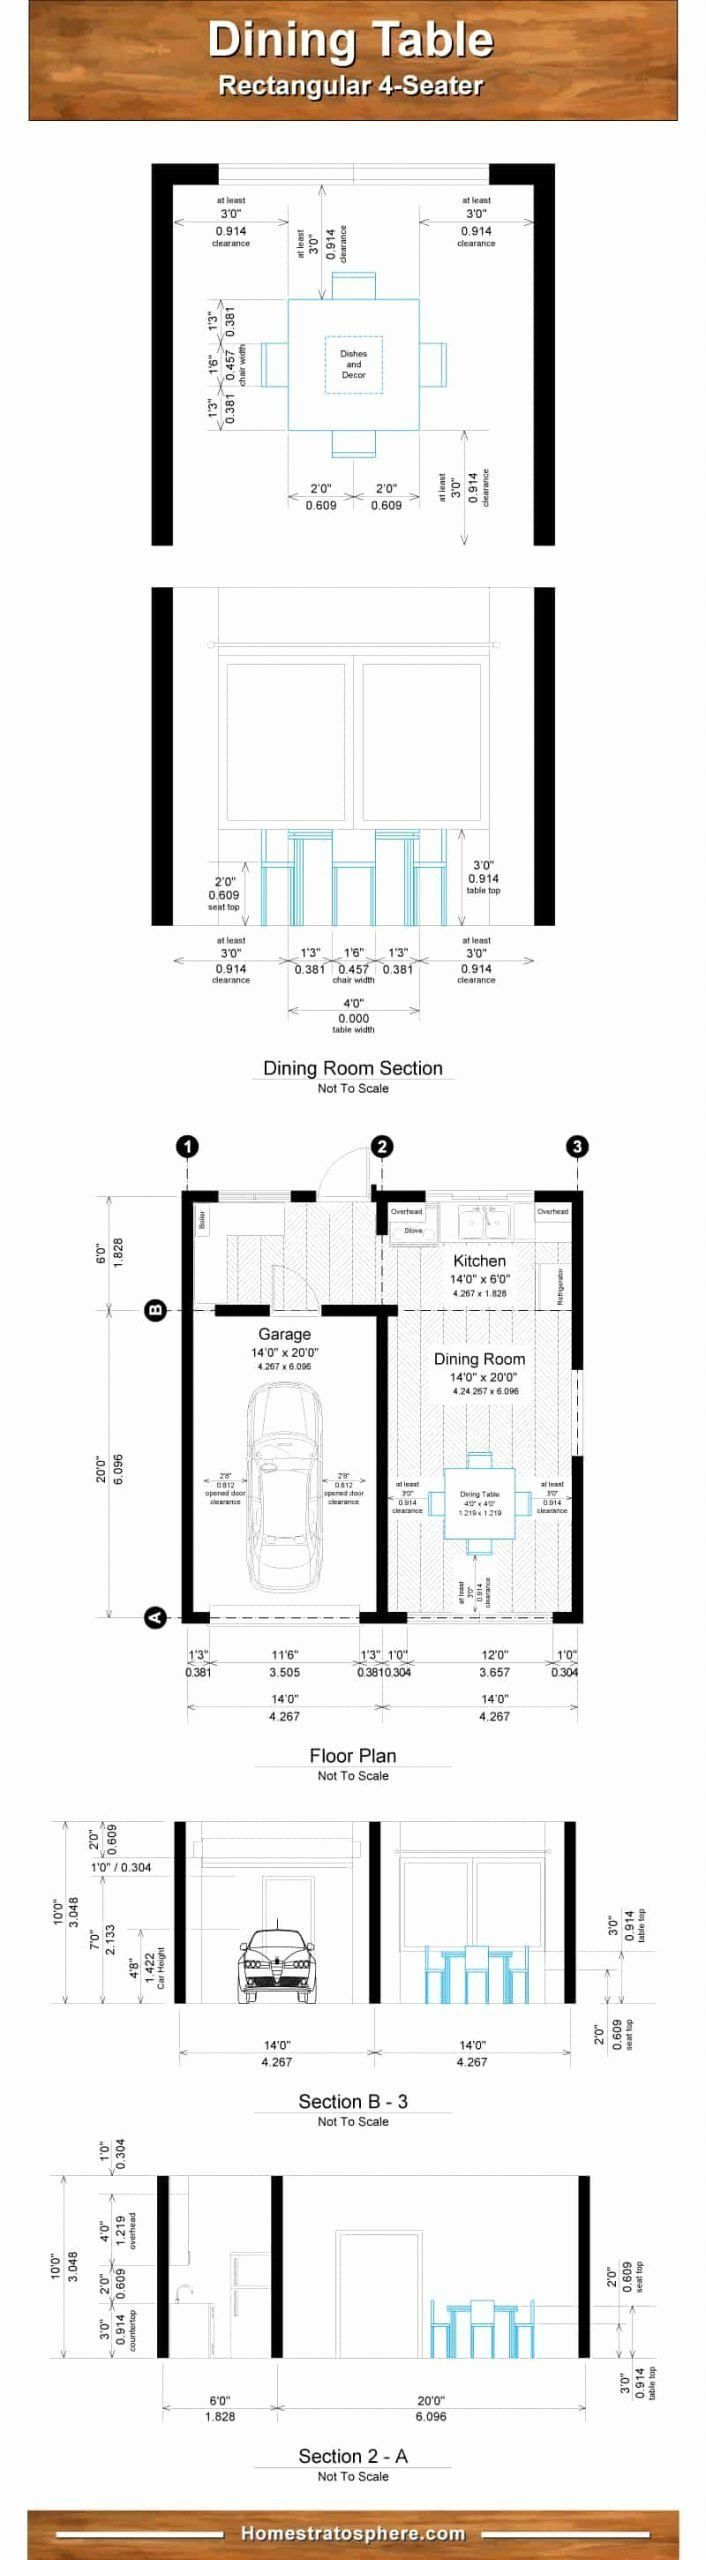 Dining Room Floor Plan Elegant Proper Dining Room Table Dimensions For 4 6 8 10 And 12 Dining Room Floor Dining Table Dimensions Beautiful Dining Rooms